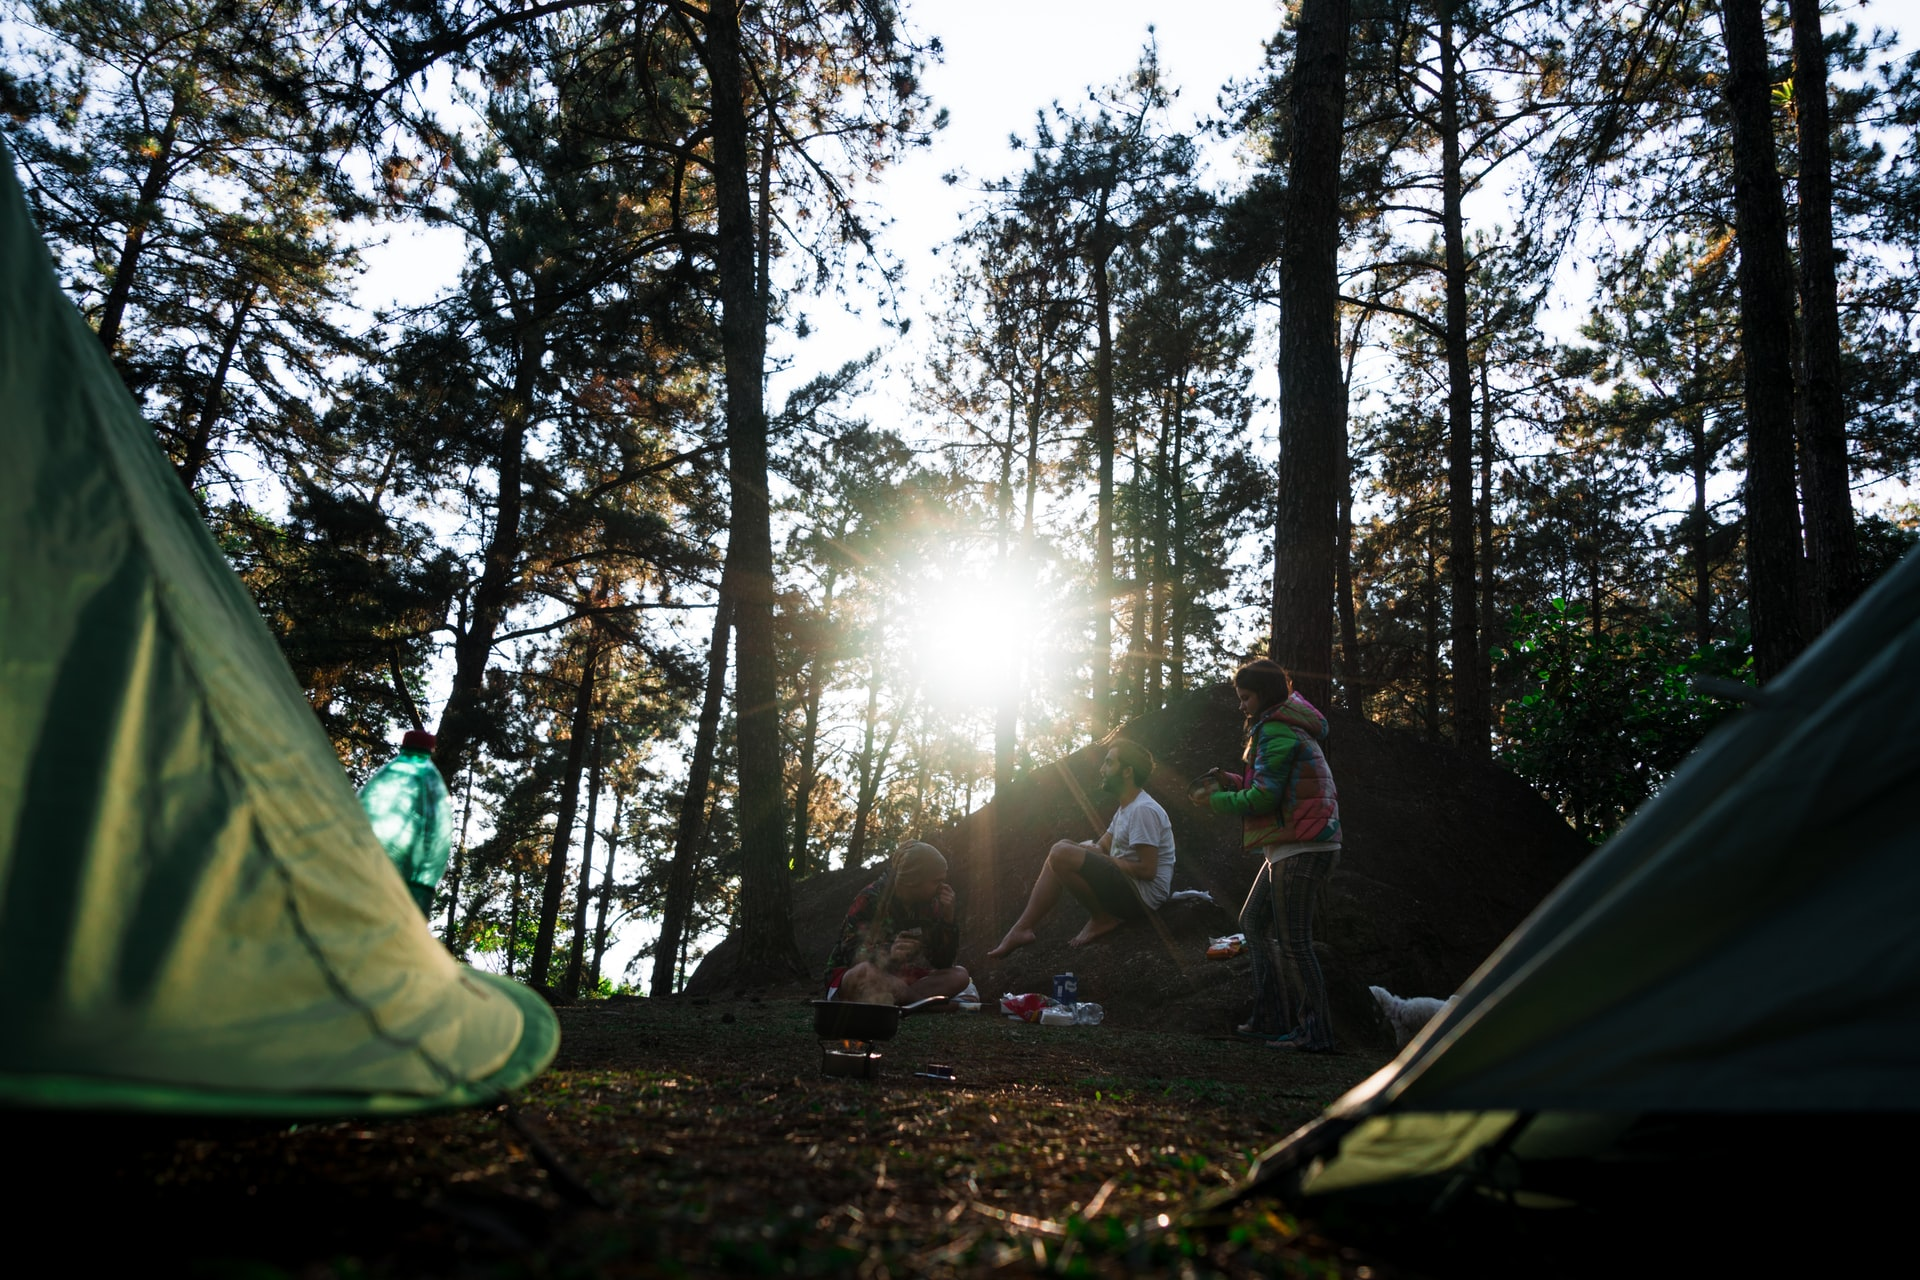 People sitting next to two tents in the forest at sunset.